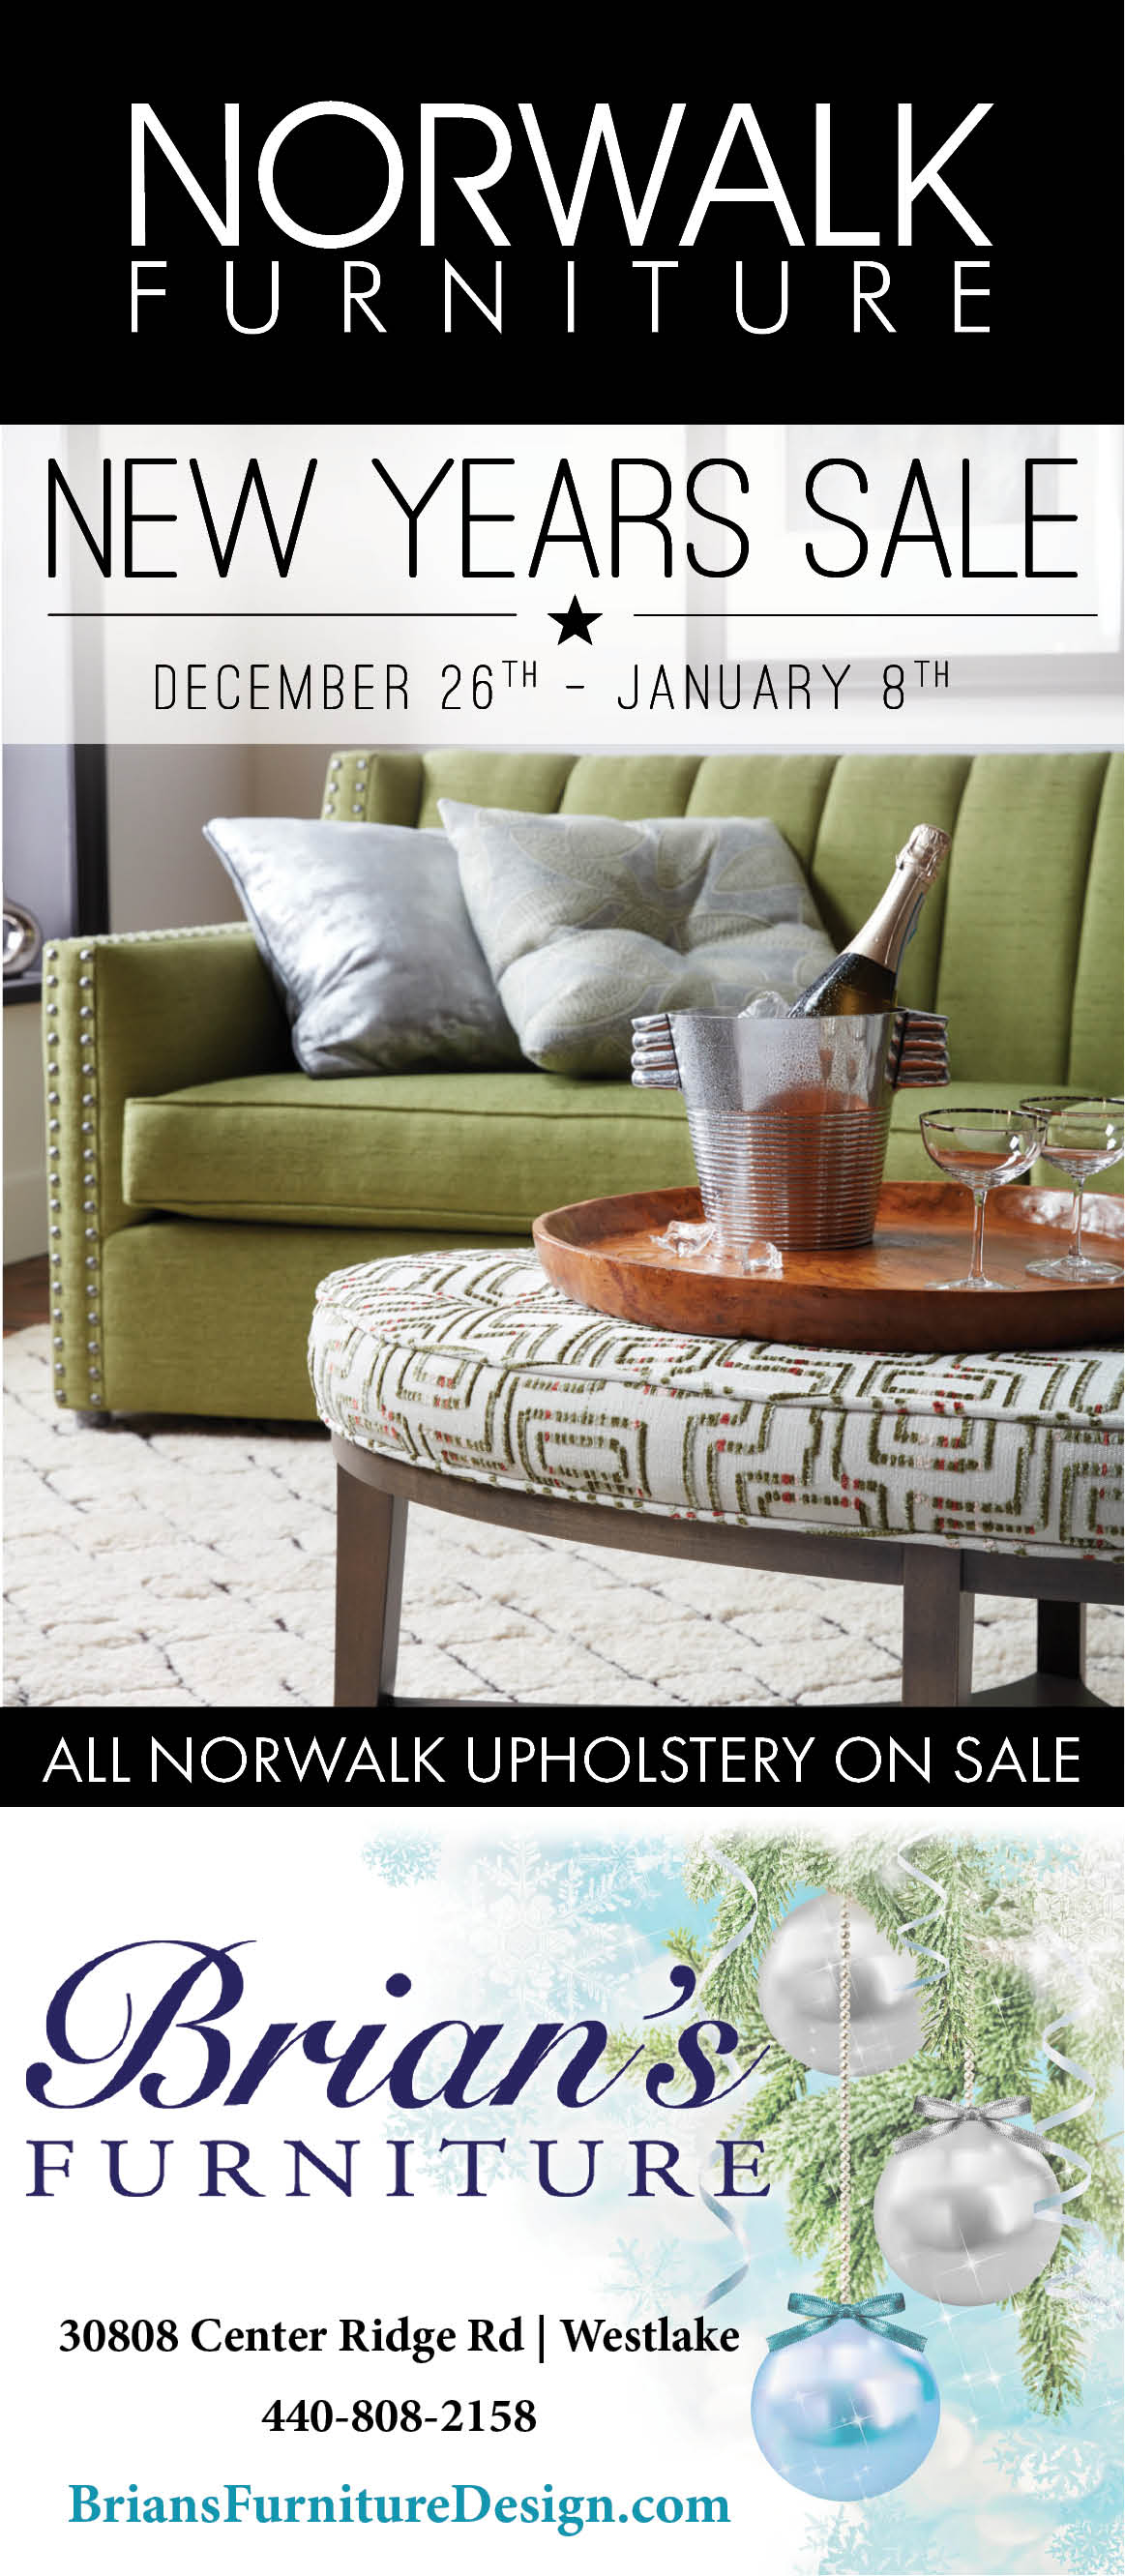 December 26 january 8 all norwalk upholstery on sale see their ad below